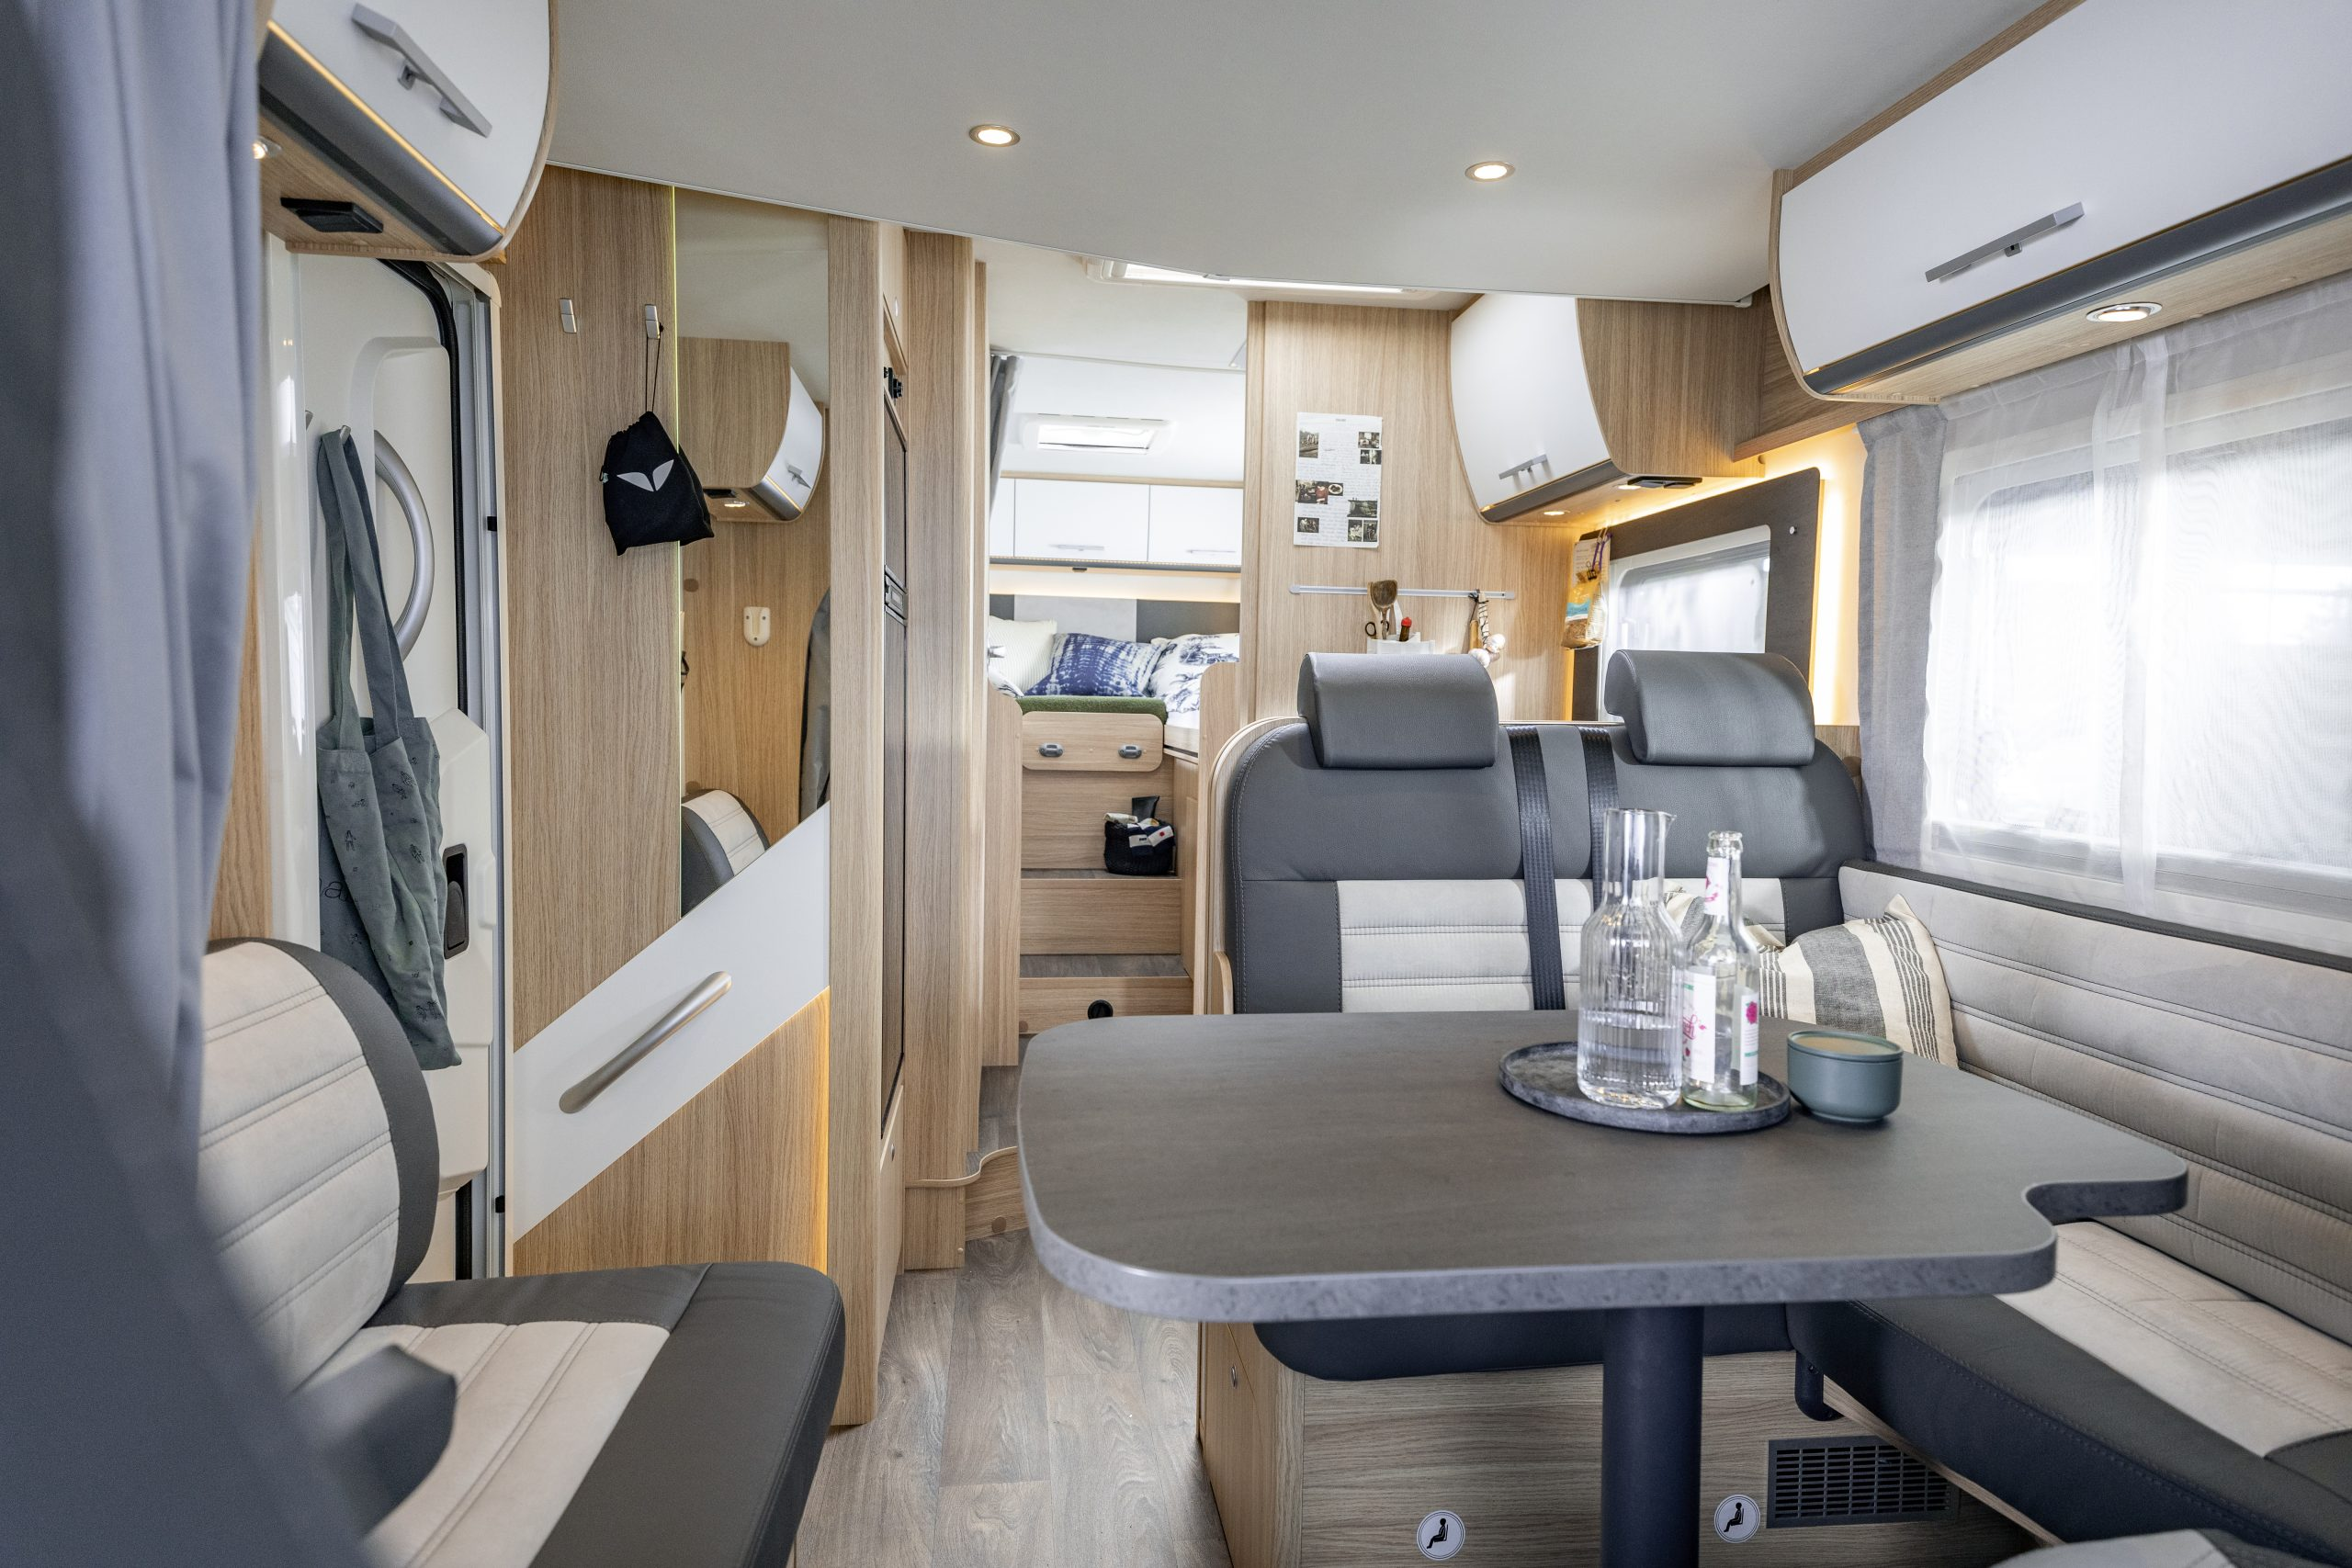 family Luxury bagerst i vognen